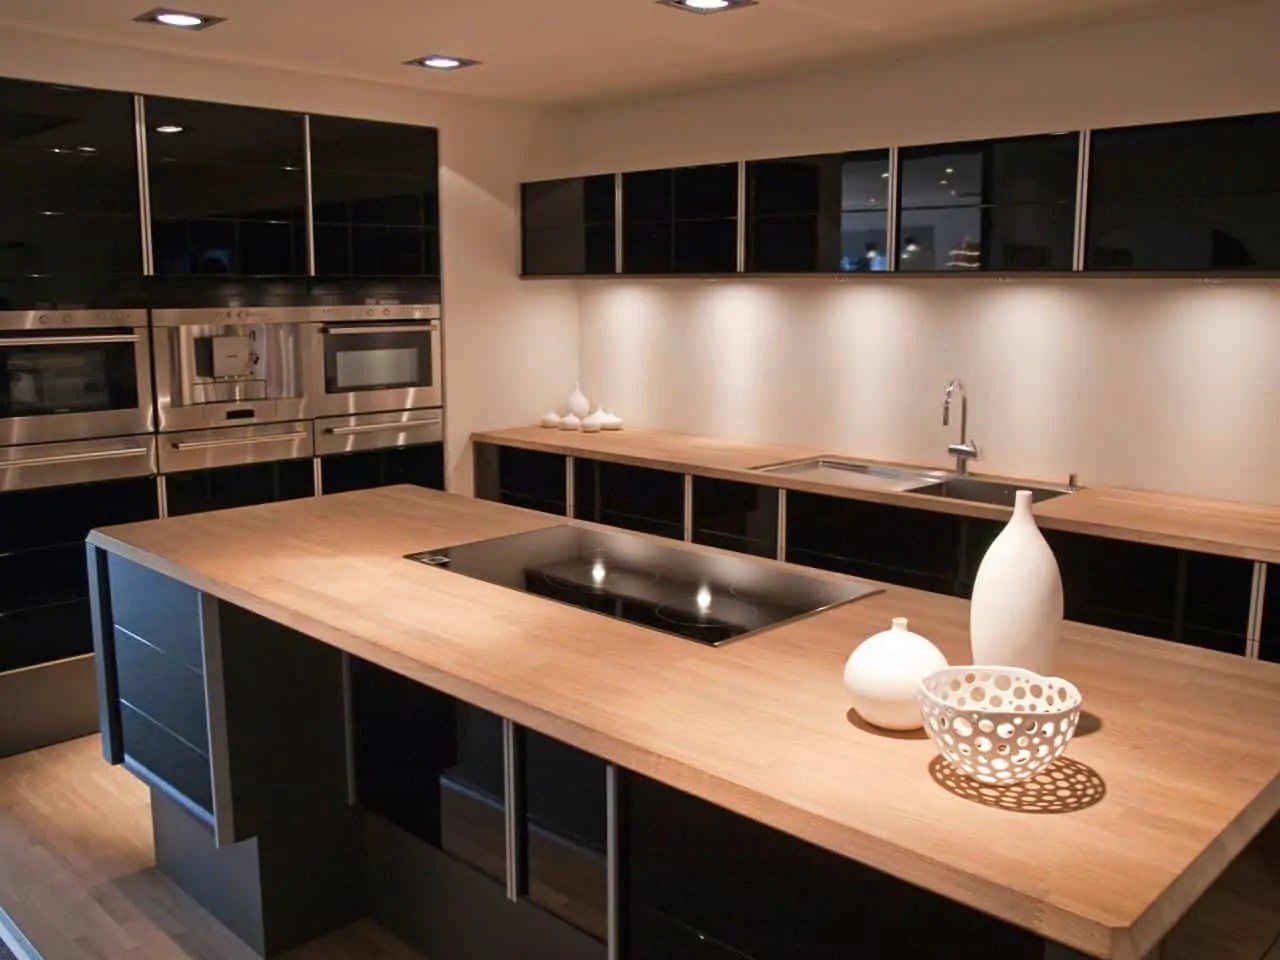 kitchen tops wood bling backsplash how to choose the best countertop decoration channel natural countertops